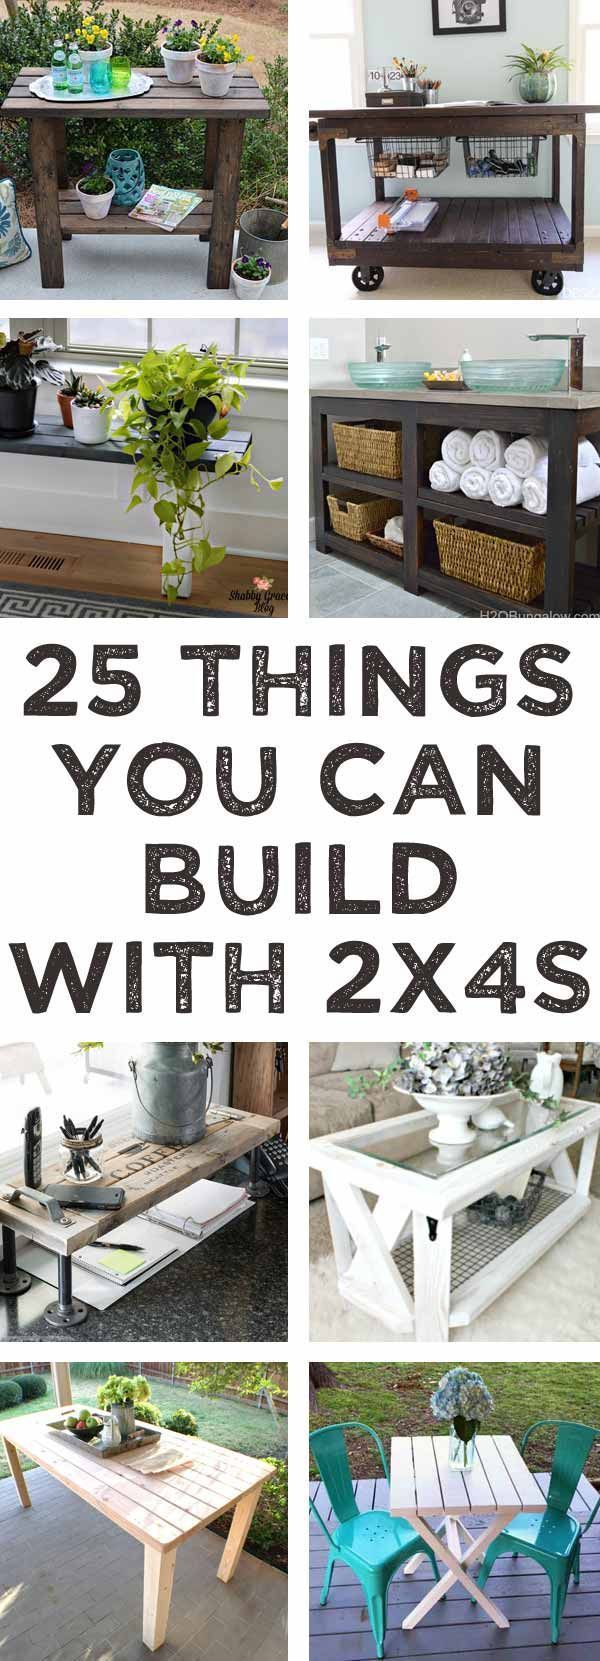 Diy Crafts Ideas : So many good ideas here for things to build with ...